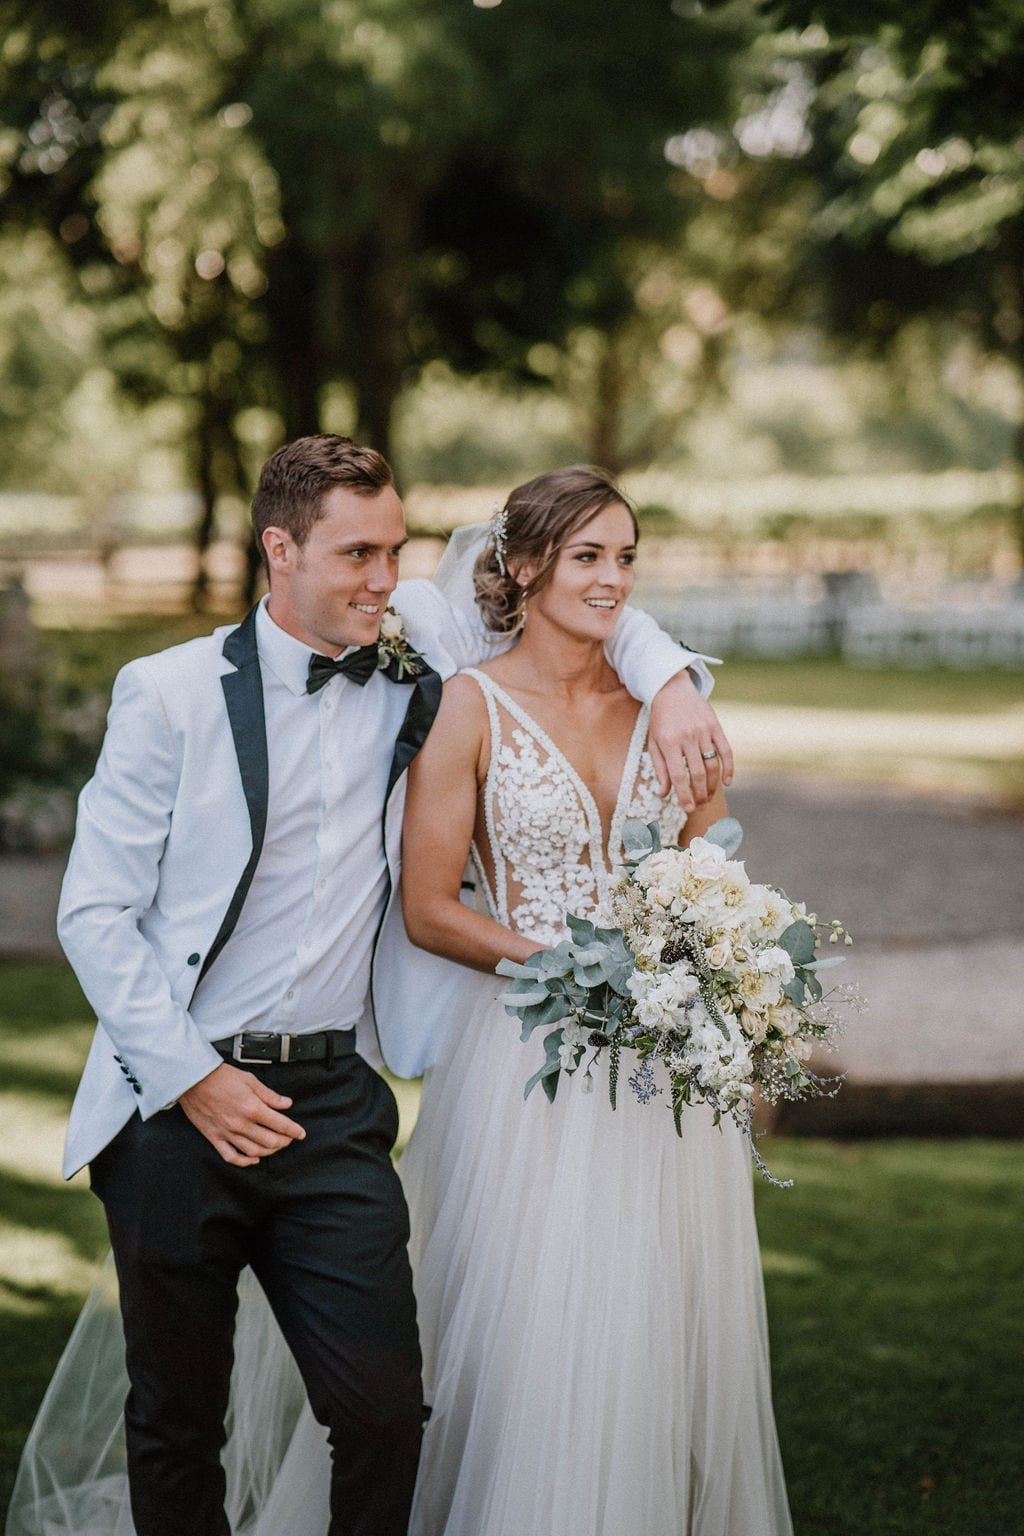 Vinka Design Features Real Weddings - bride in custom version of the Isabelle gown from our Heart of Havana collection. A fitted nude based bodice with delicate 3D beaded flowers with hand beaded trim and a skirt of dreamy tulle. Bride and groom pose